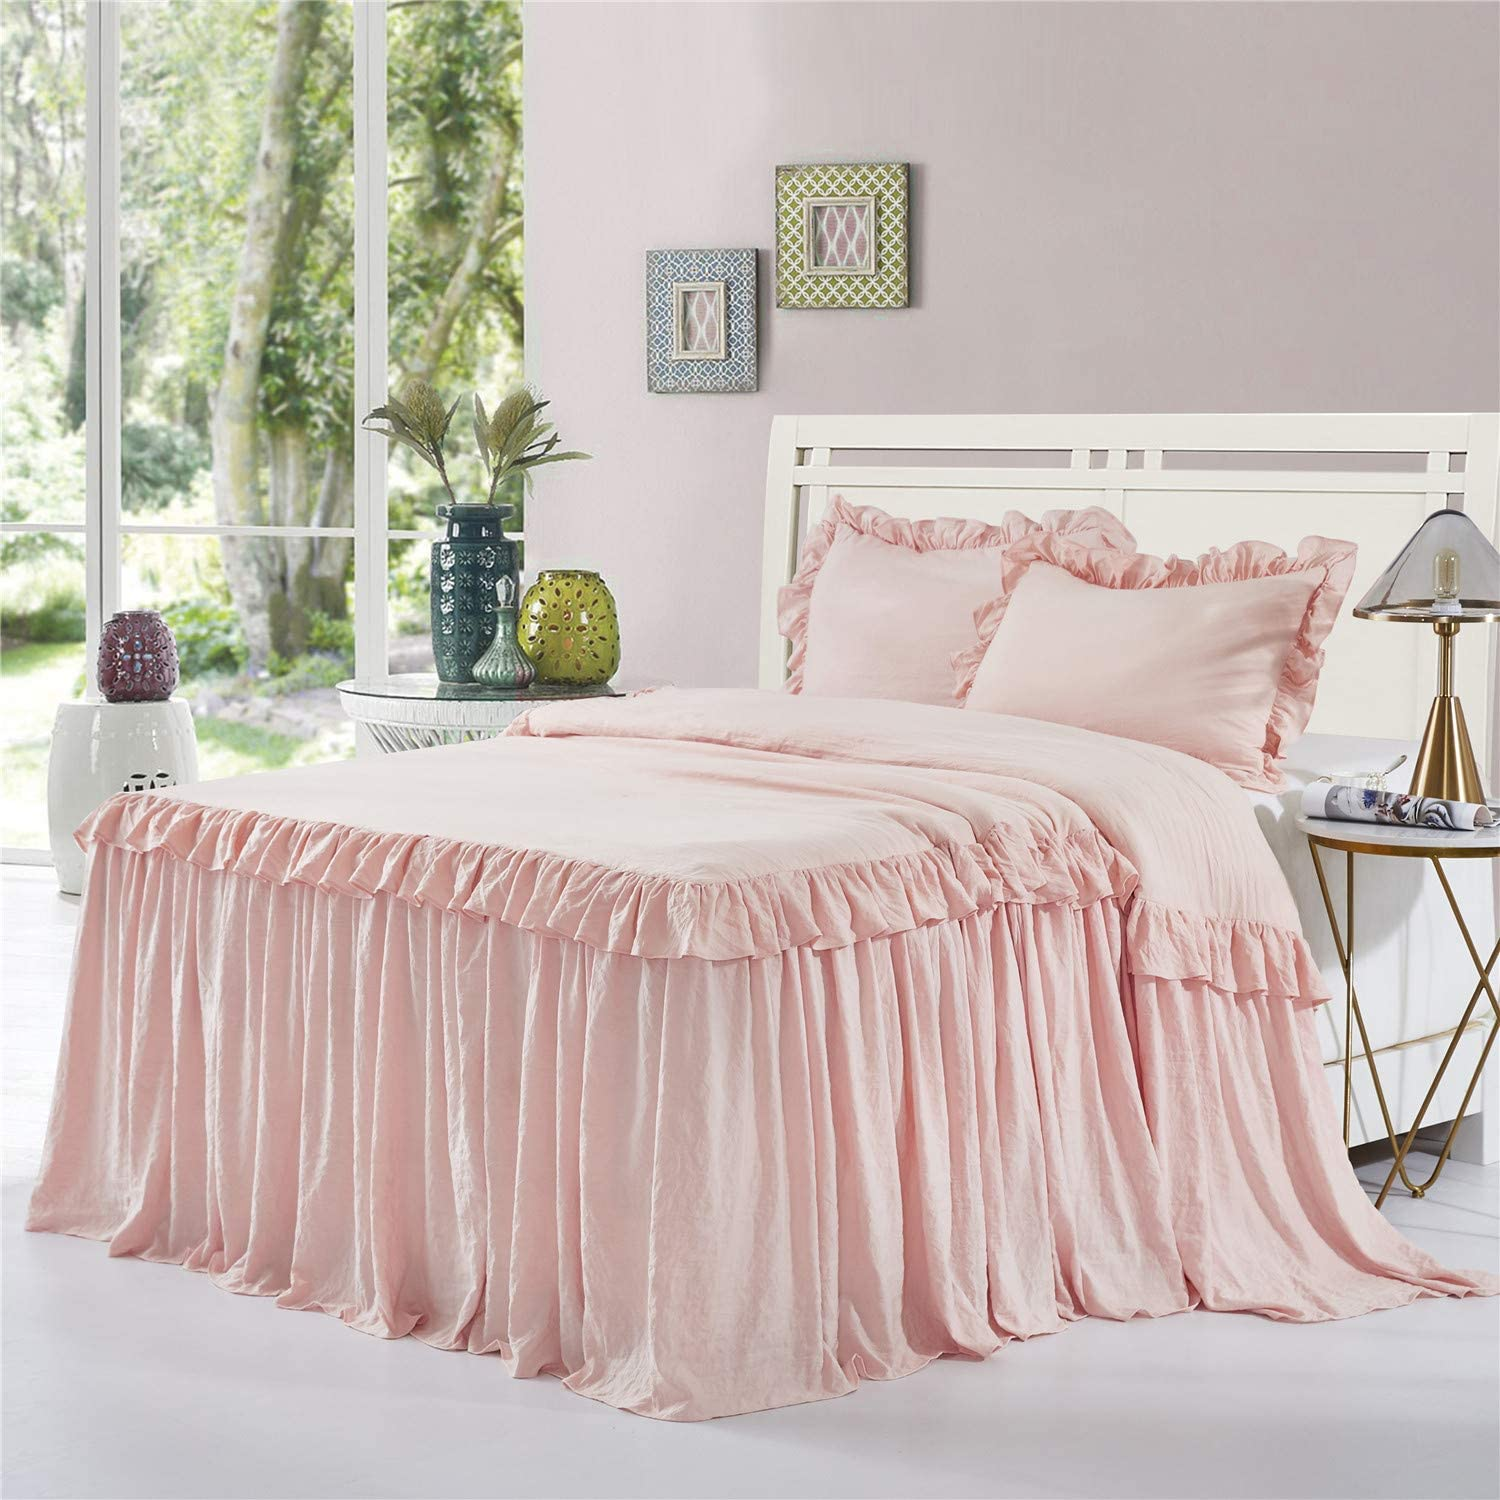 HIG 3 Piece Ruffle Skirt Bedspread Set King-Peach Pink Color 30 inches Drop Ruffled Style Bed Skirt Coverlets Bedspreads Dust Ruffles- ALINA Bedding Collections King Size-1 Bedspread, 2 Standard Shams